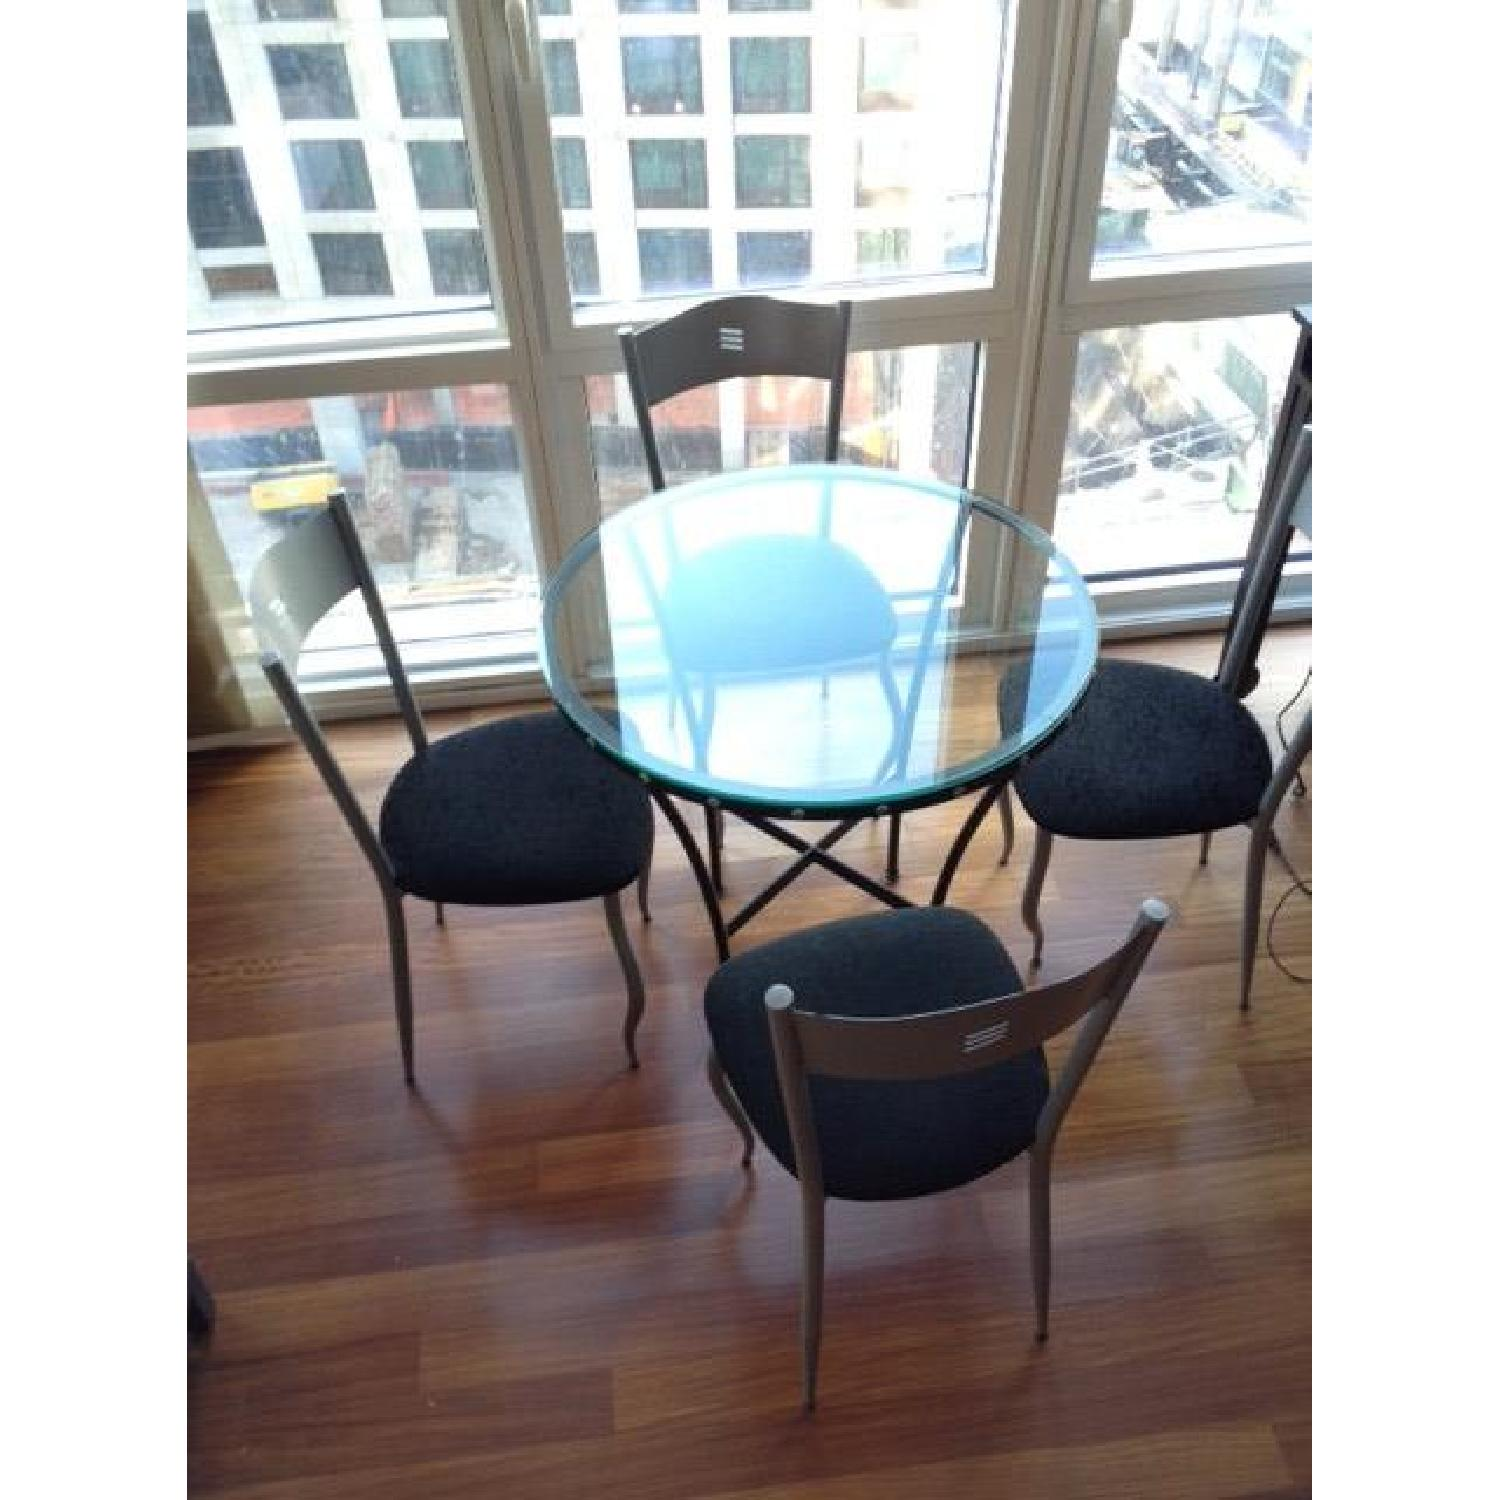 Glass Table w/ 4 Chairs - image-1